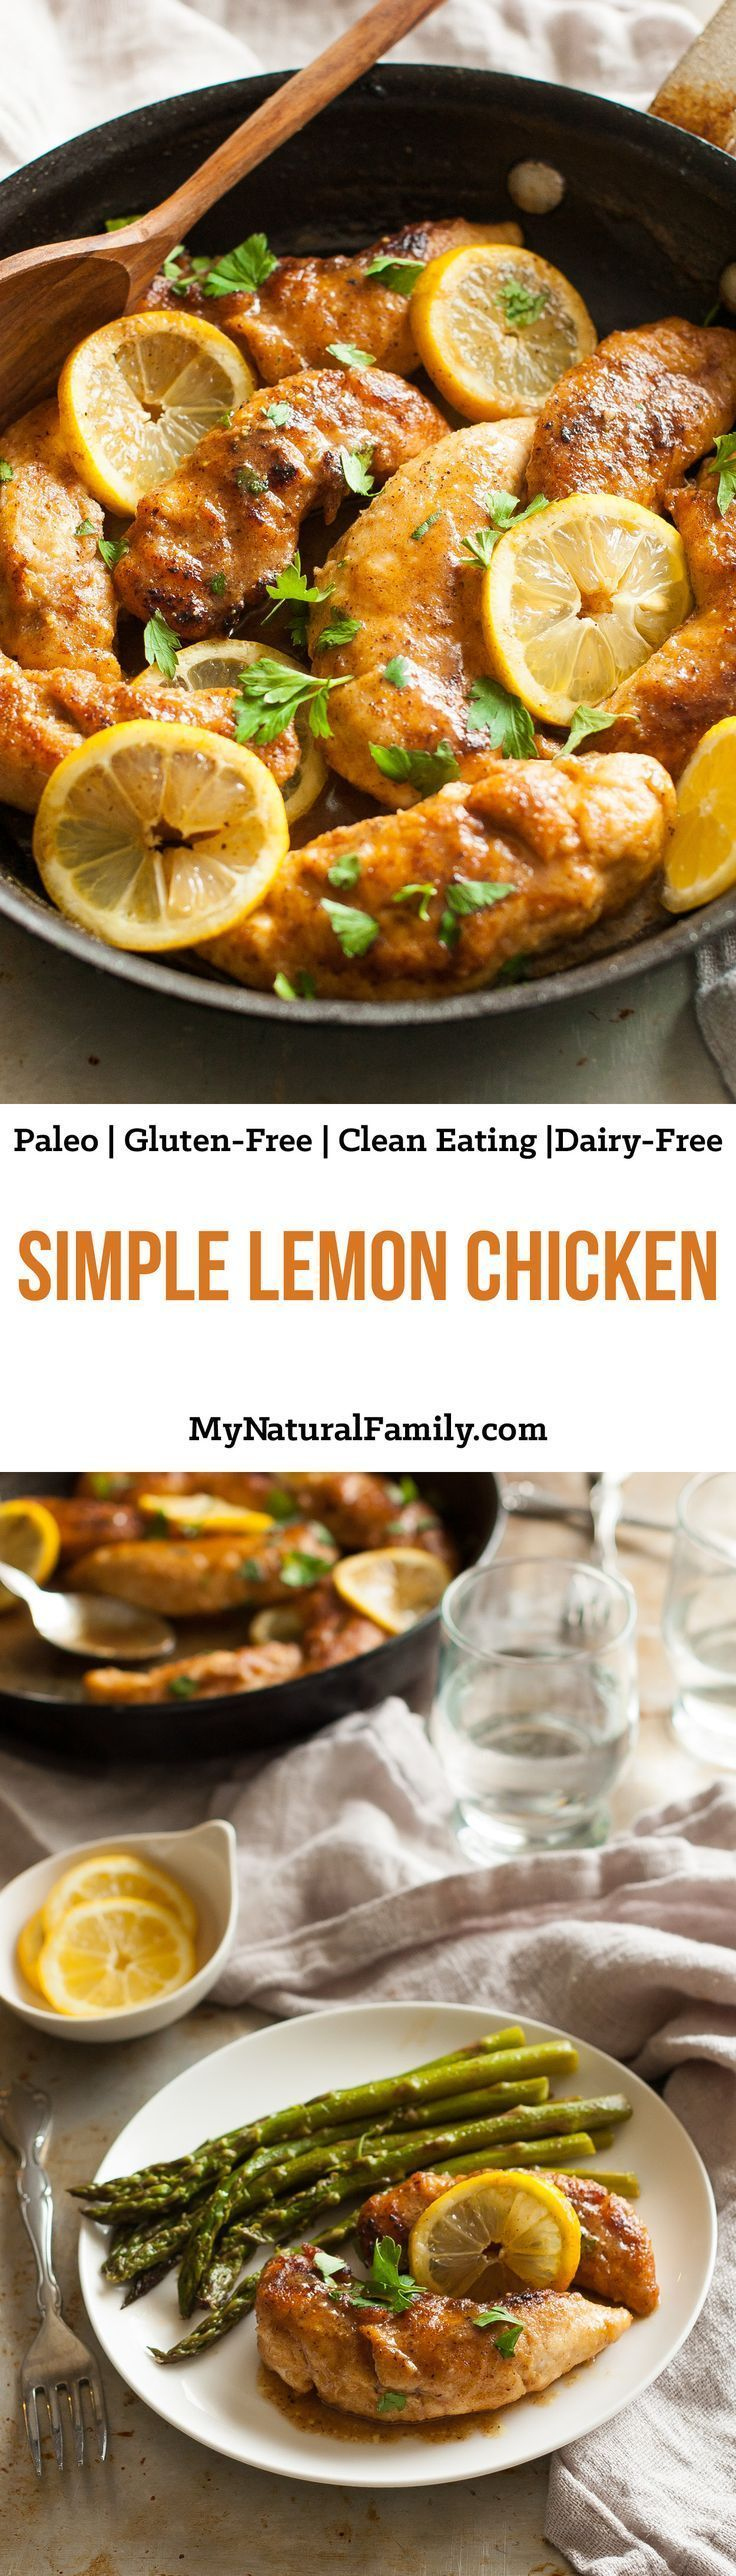 Simple Lemon Chicken Recipe {Paleo, Gluten-Free, Clean Eating, Dairy-Free} - this has a simple breading and after it's all golden brown, you make a quick lemon sauce right in the pan. I've made this hundreds of times and I still love it. Make extra sauce to put over noodles, cauliflower or the carb of your choice.